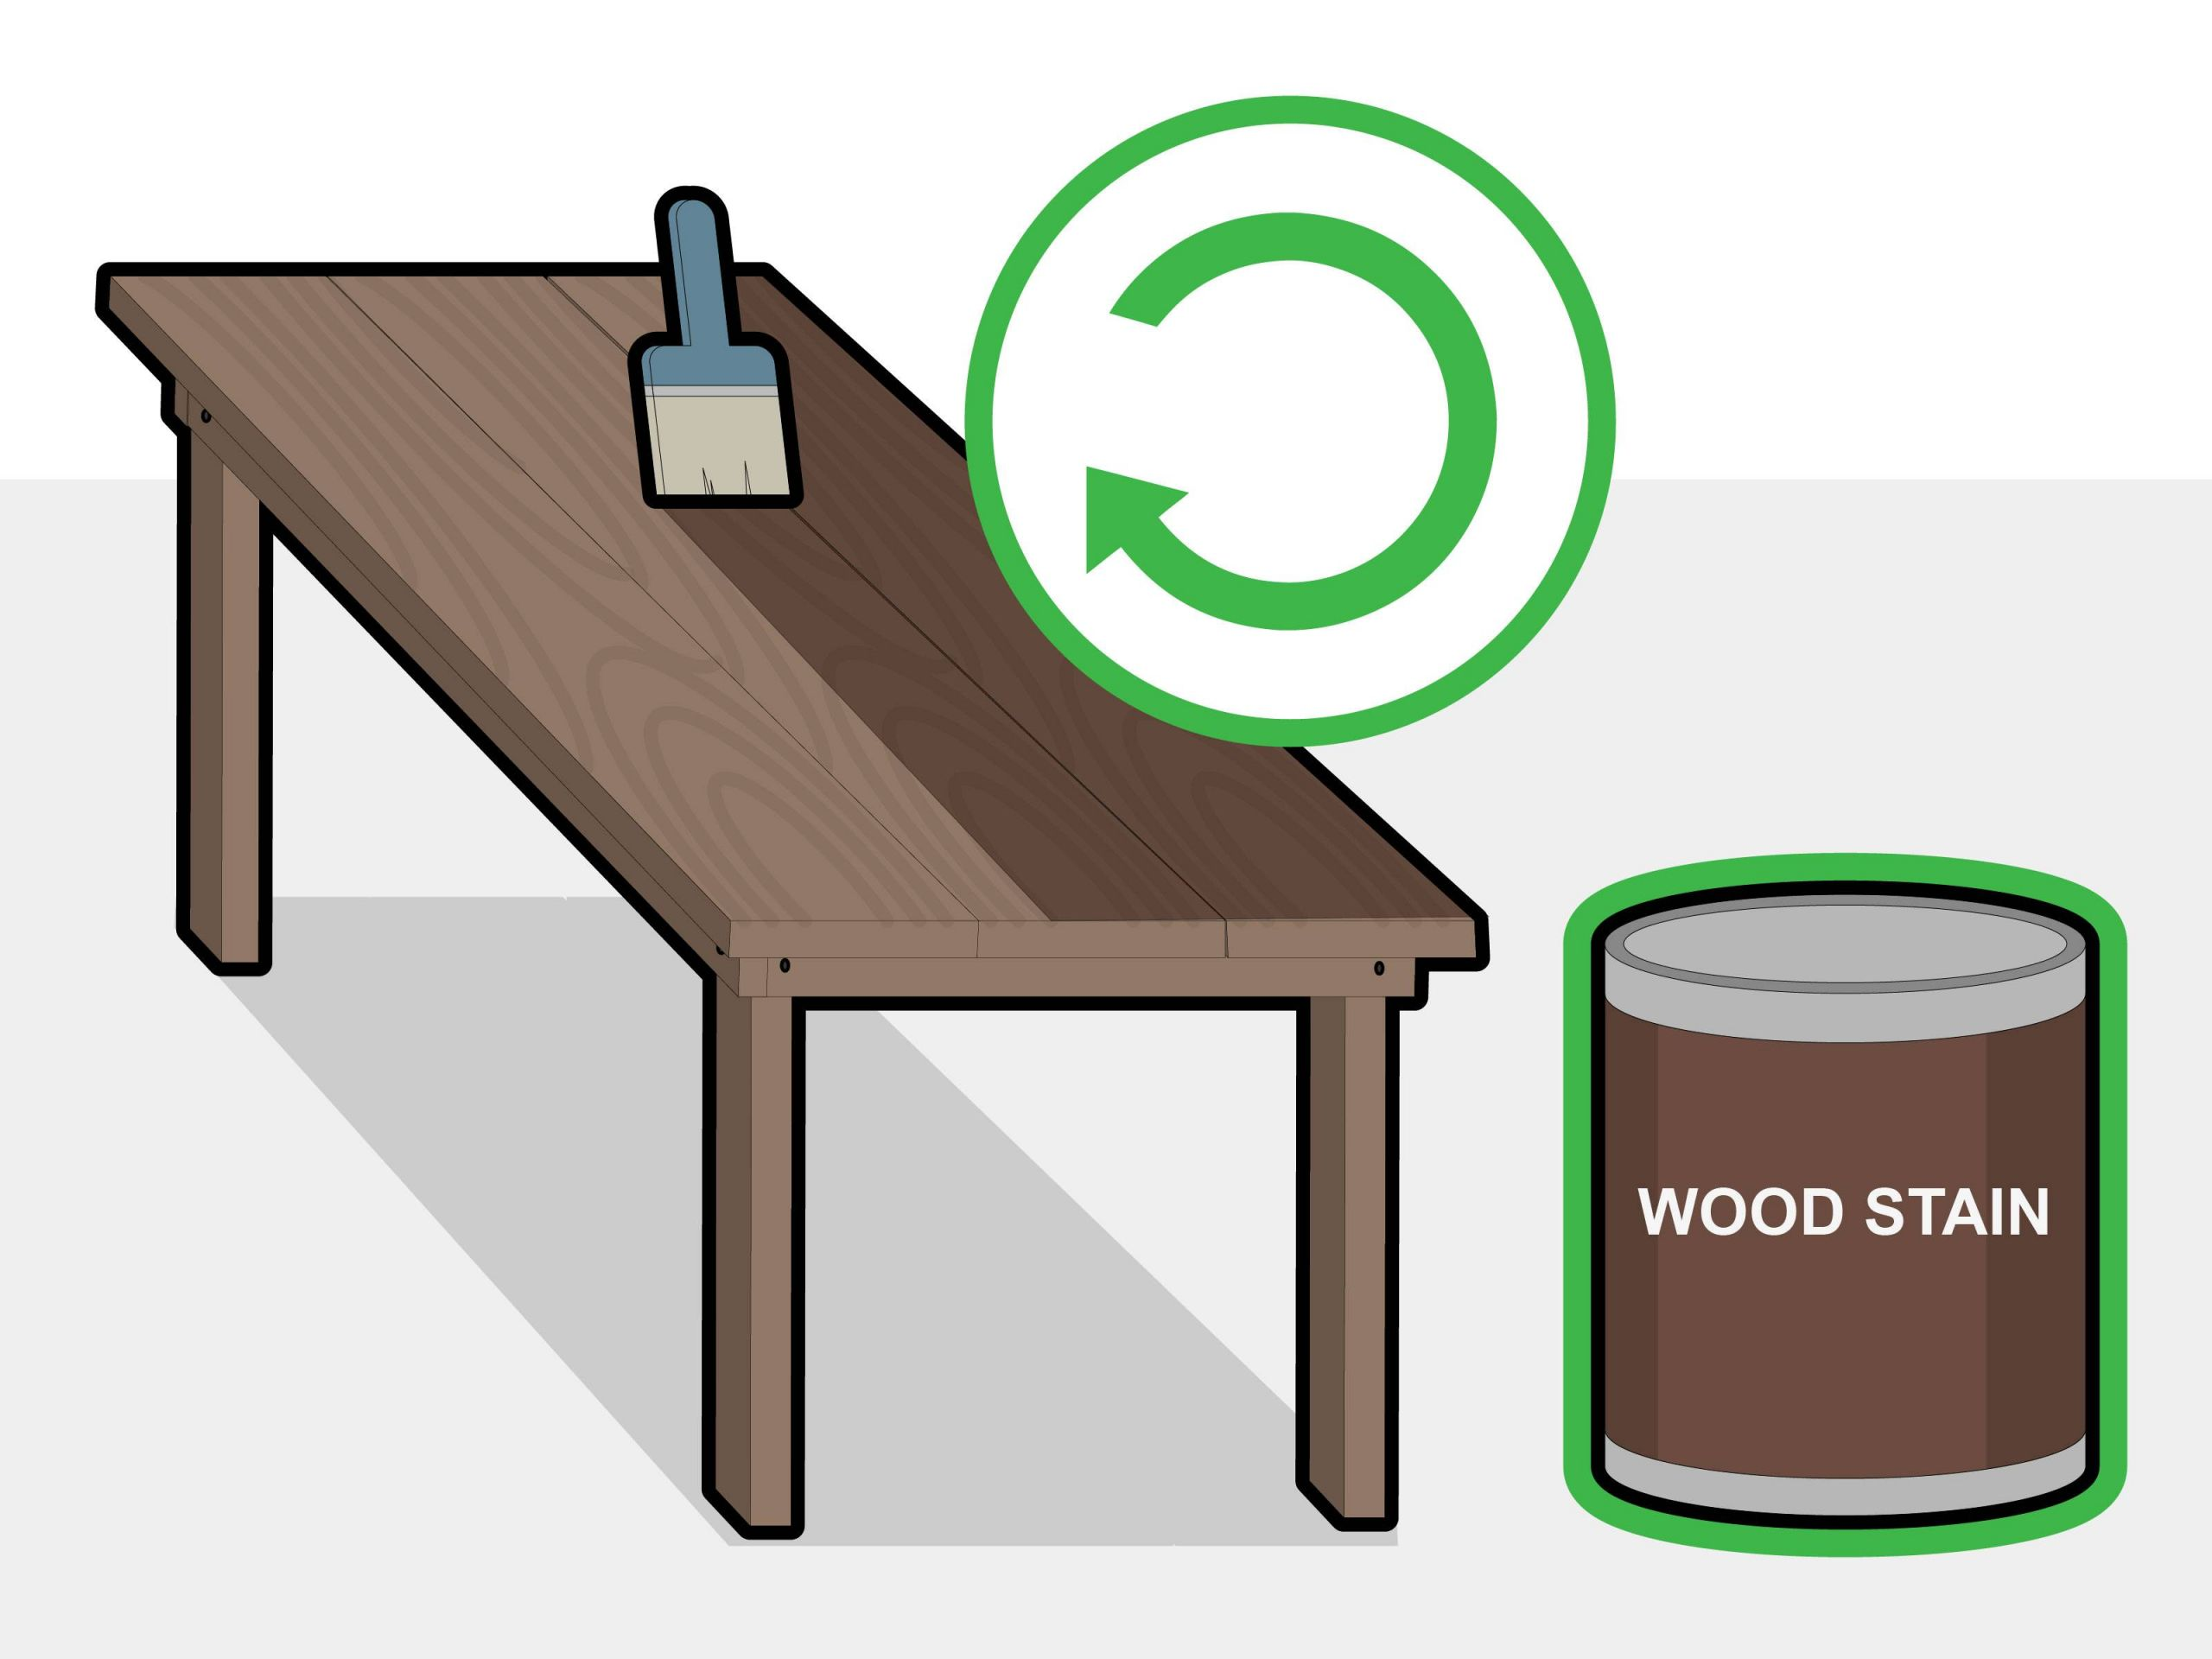 Homemade Desk Luxury How to Make A Table with Wikihow